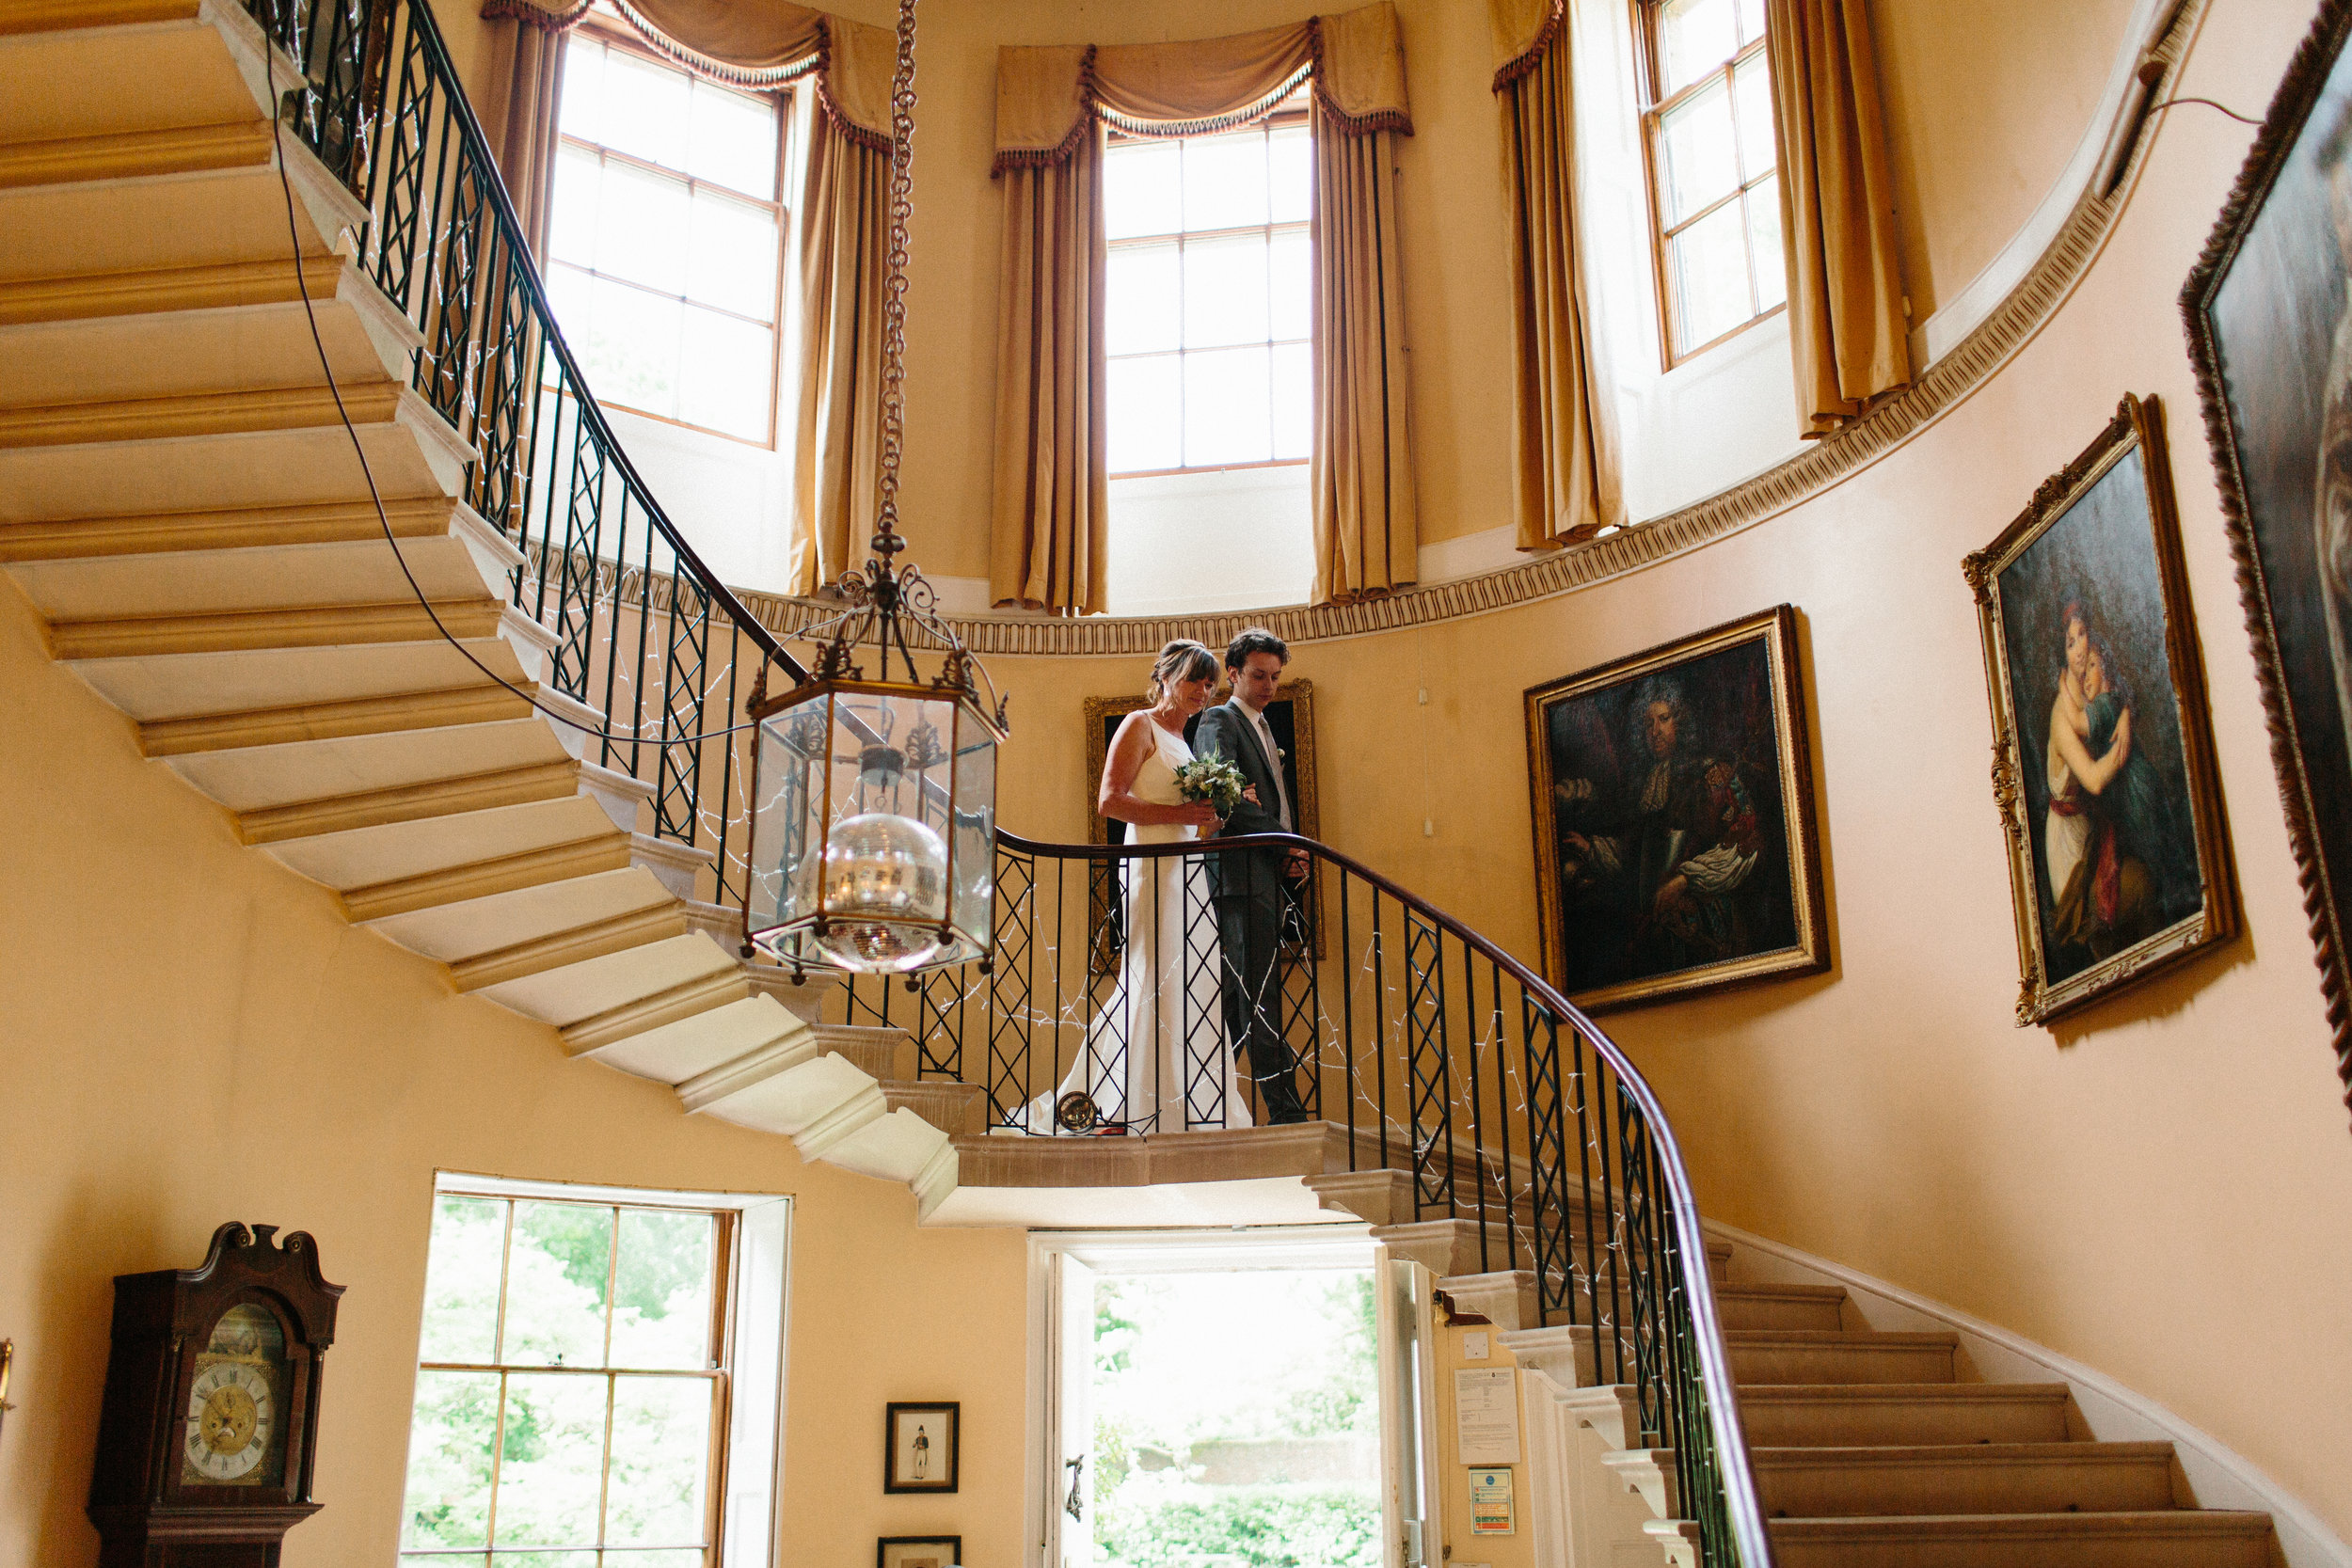 bride sweeping staircase